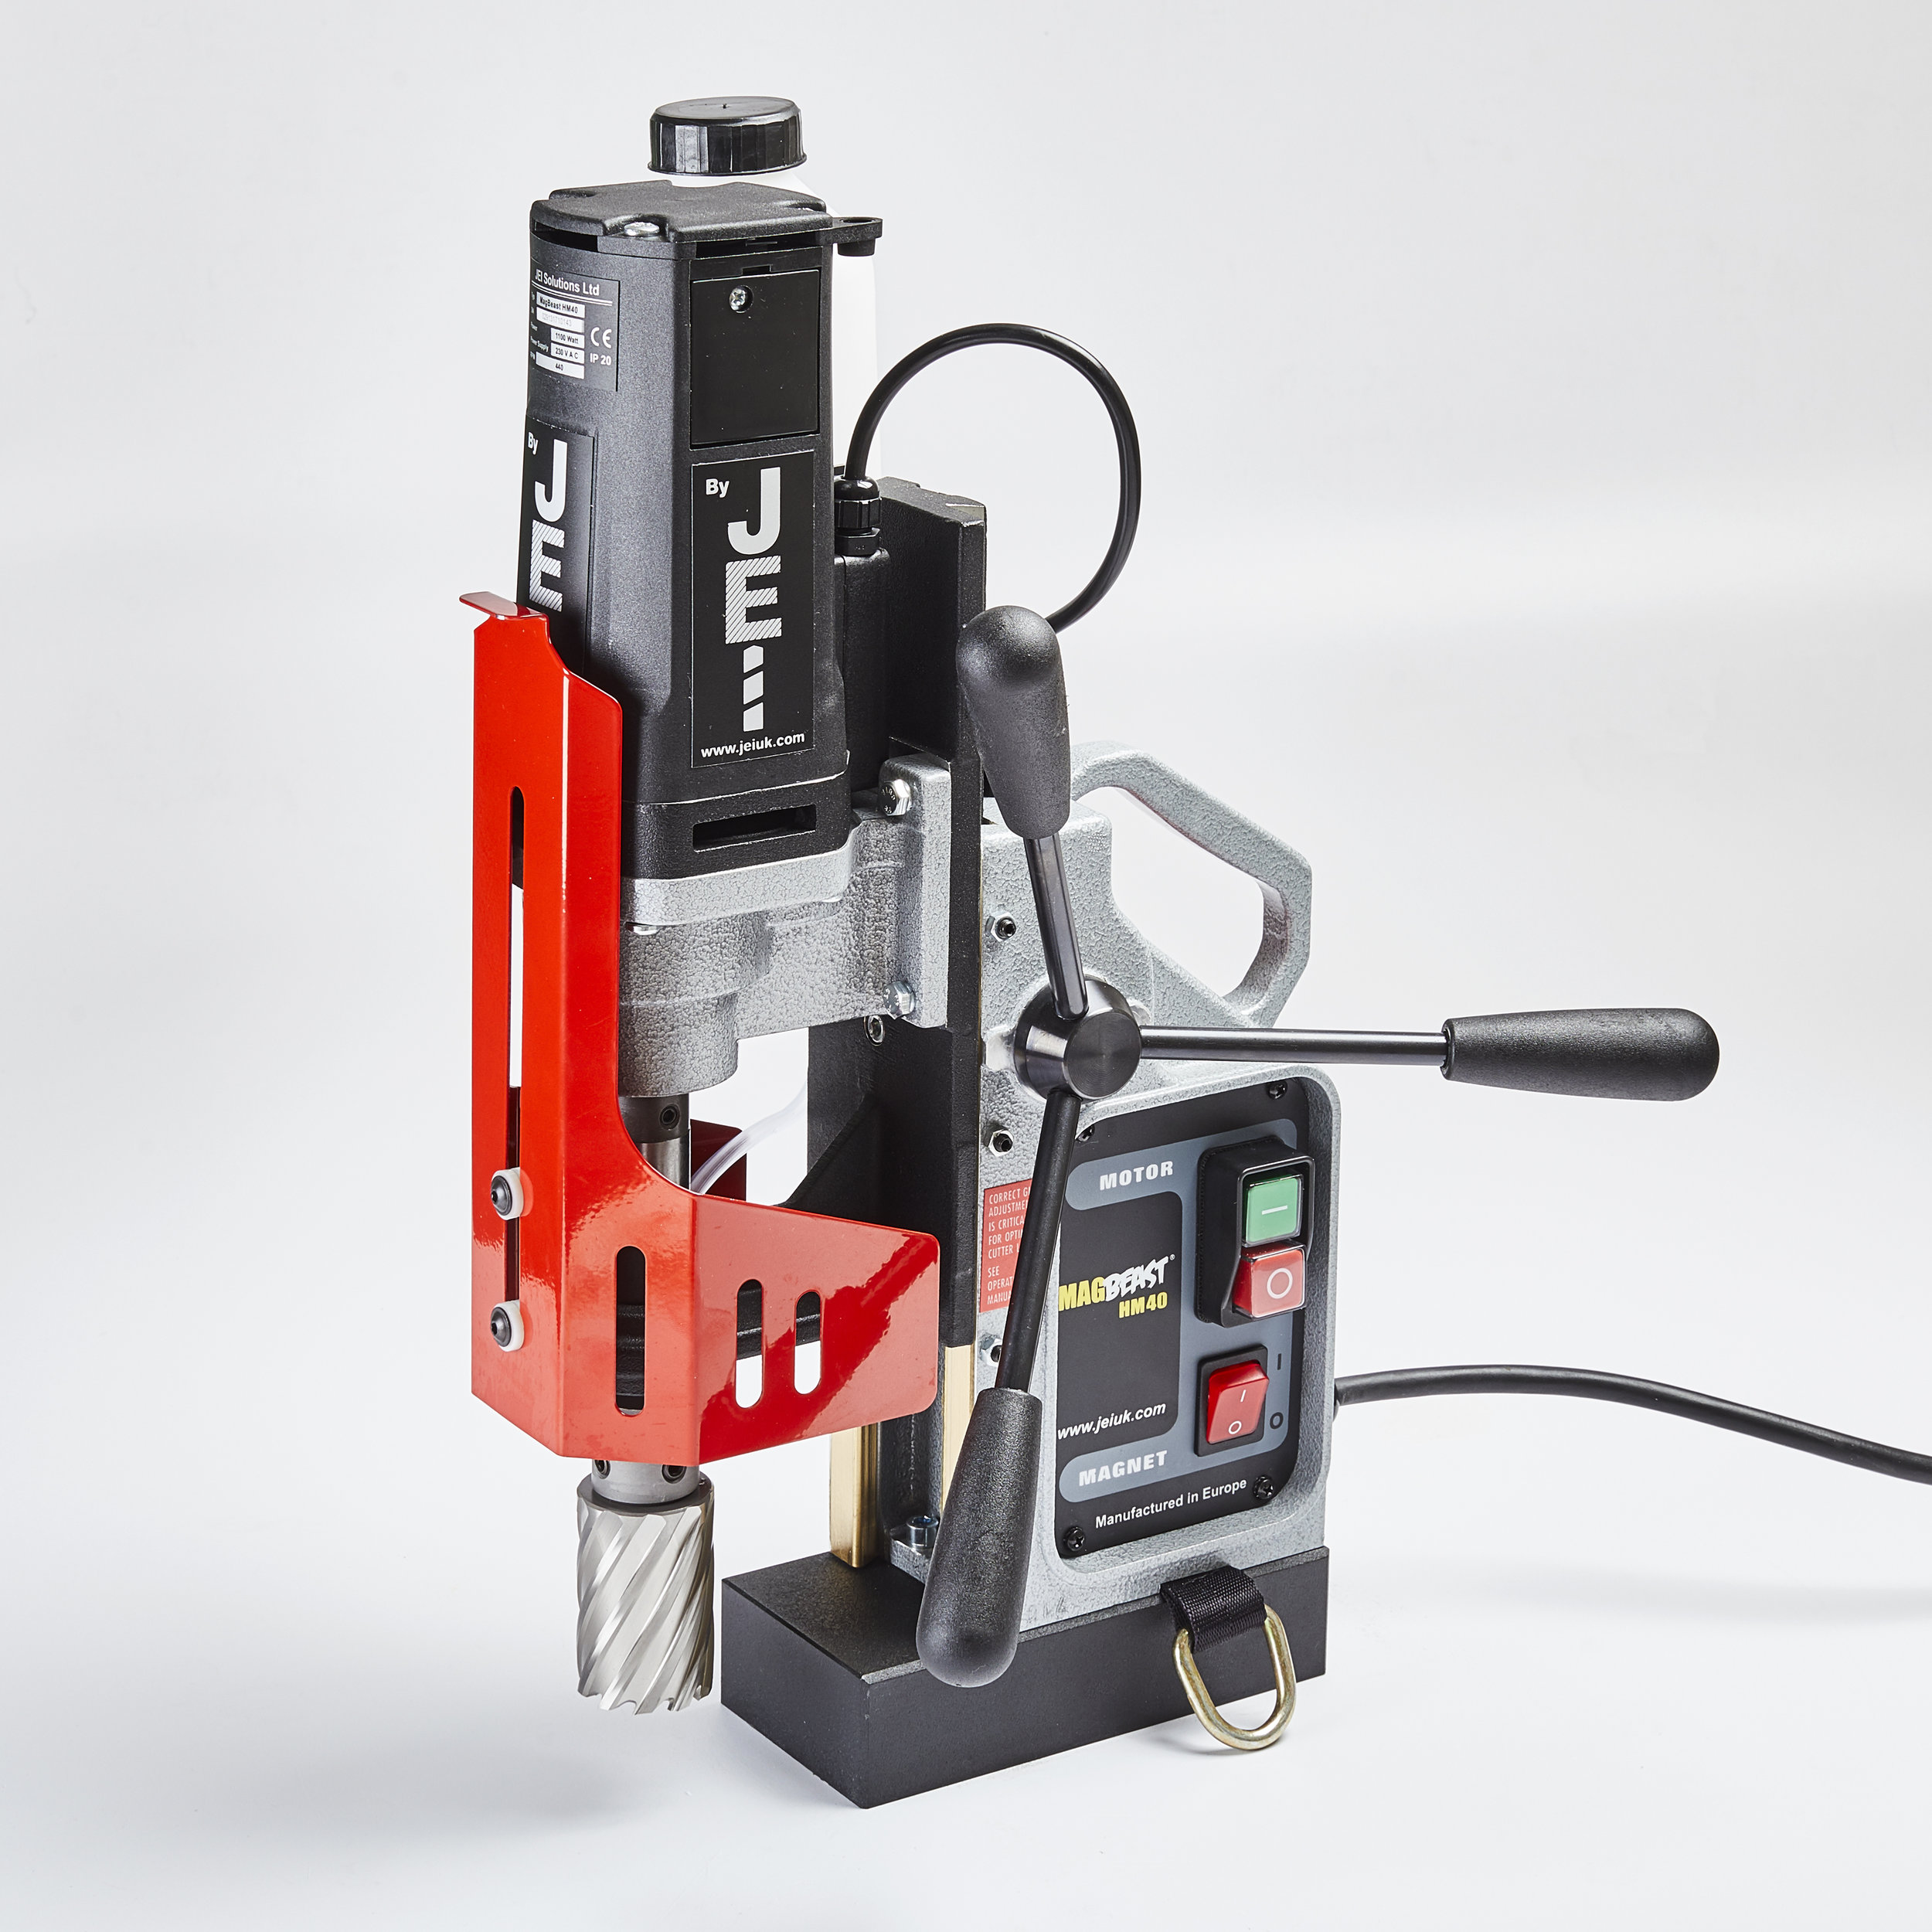 HM40 MAGNETIC DRILL - Powerful 1100 watt motor delivering 40mm cutting capacity.Easily adapts for a 13mm chuck for use on twist drill applications.Only 12.7Kg£450.00 + VAT